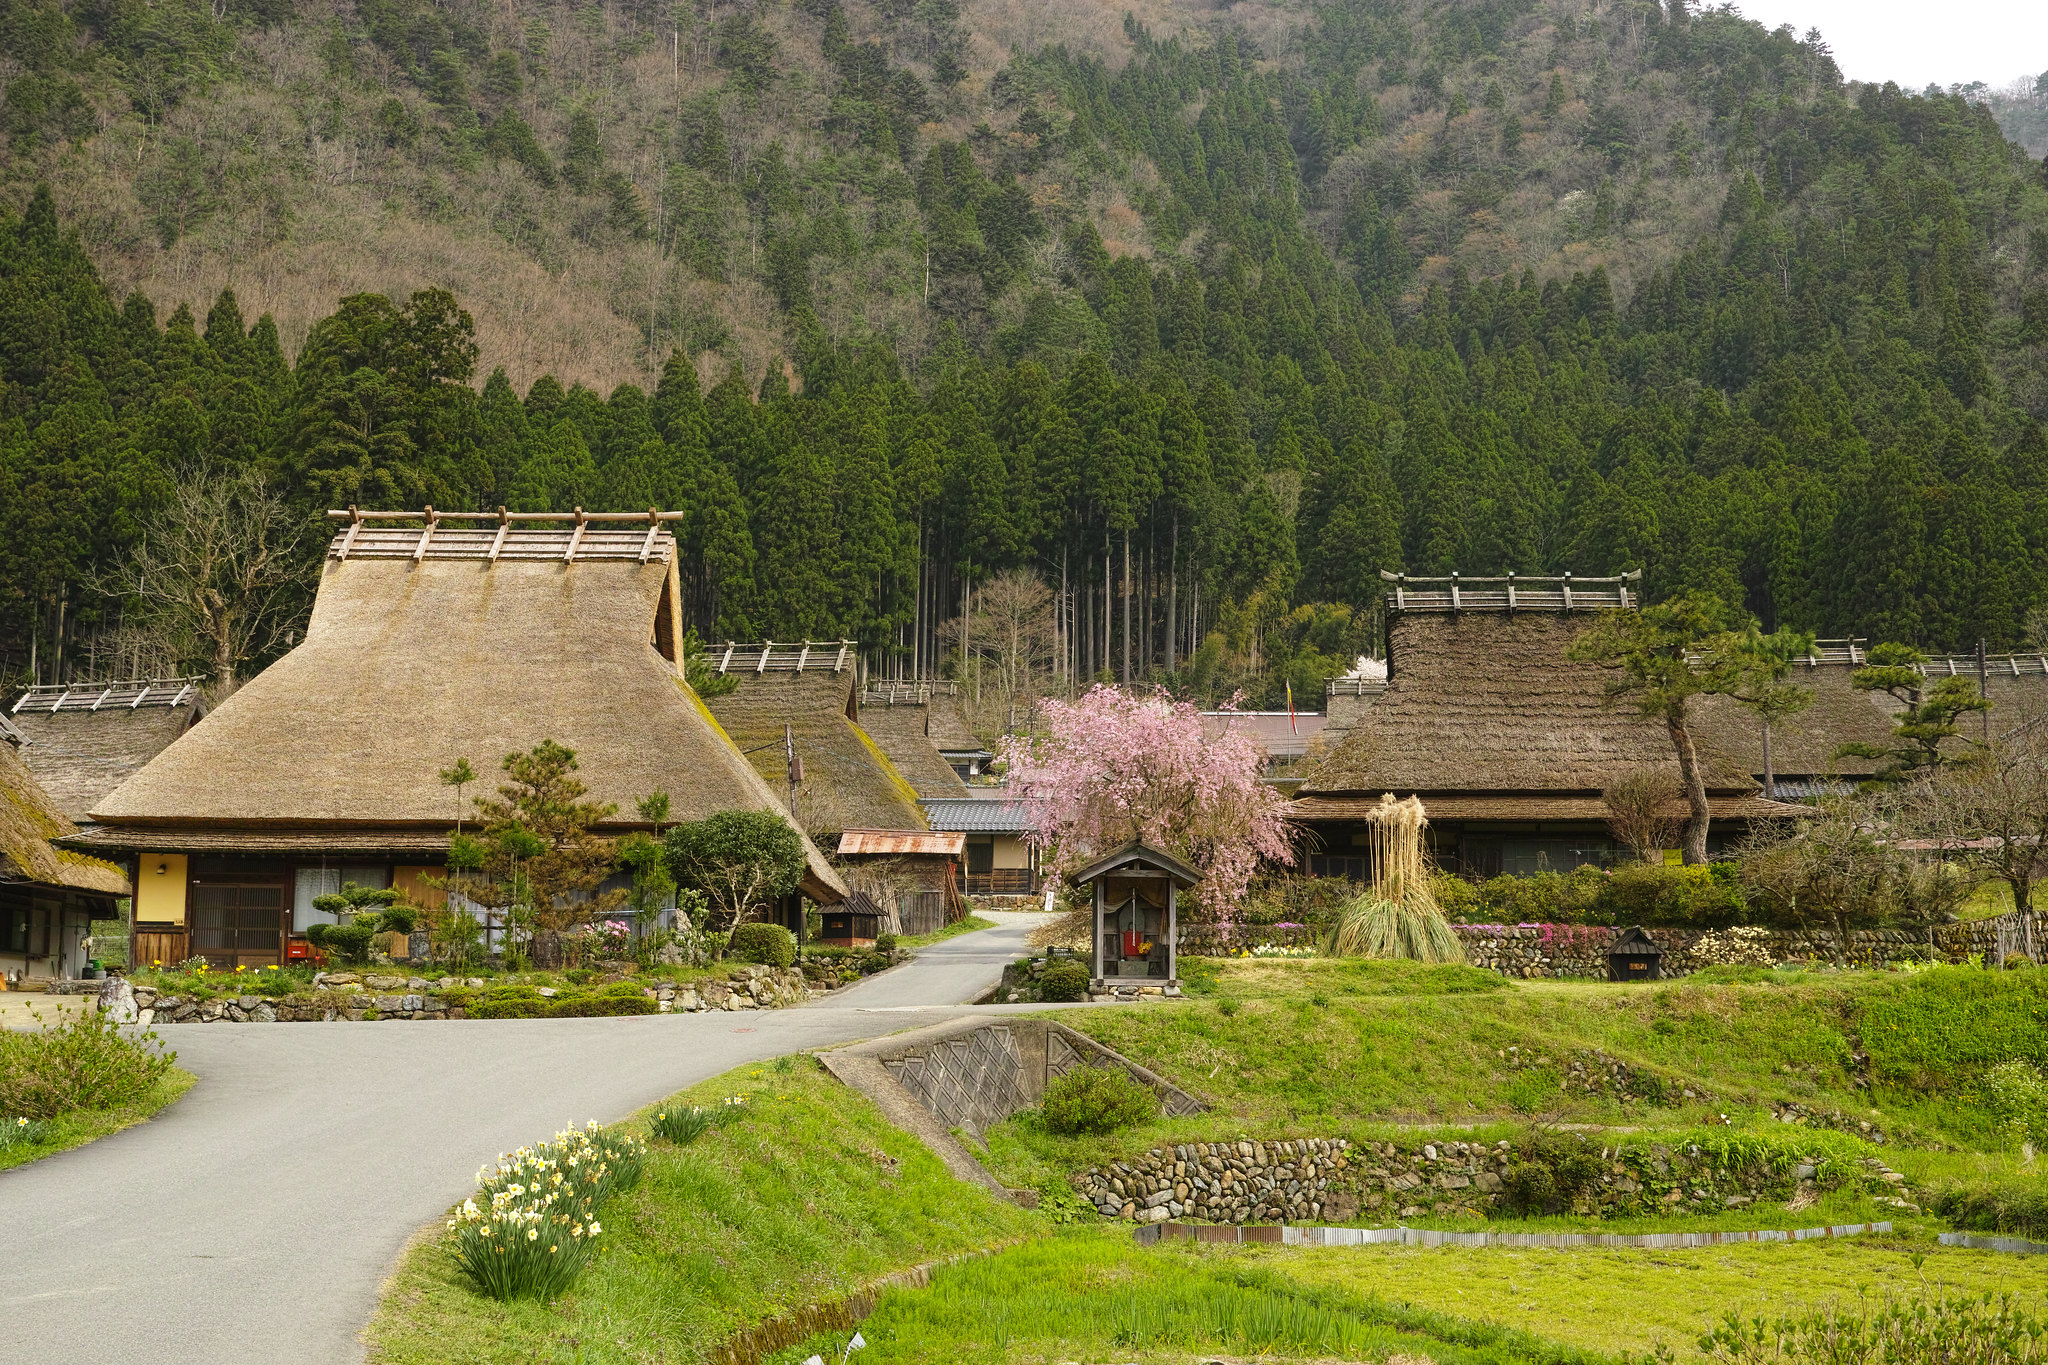 10 Things To Do In Kyoto Prefecture, Japan [with Suggested Tours] 08